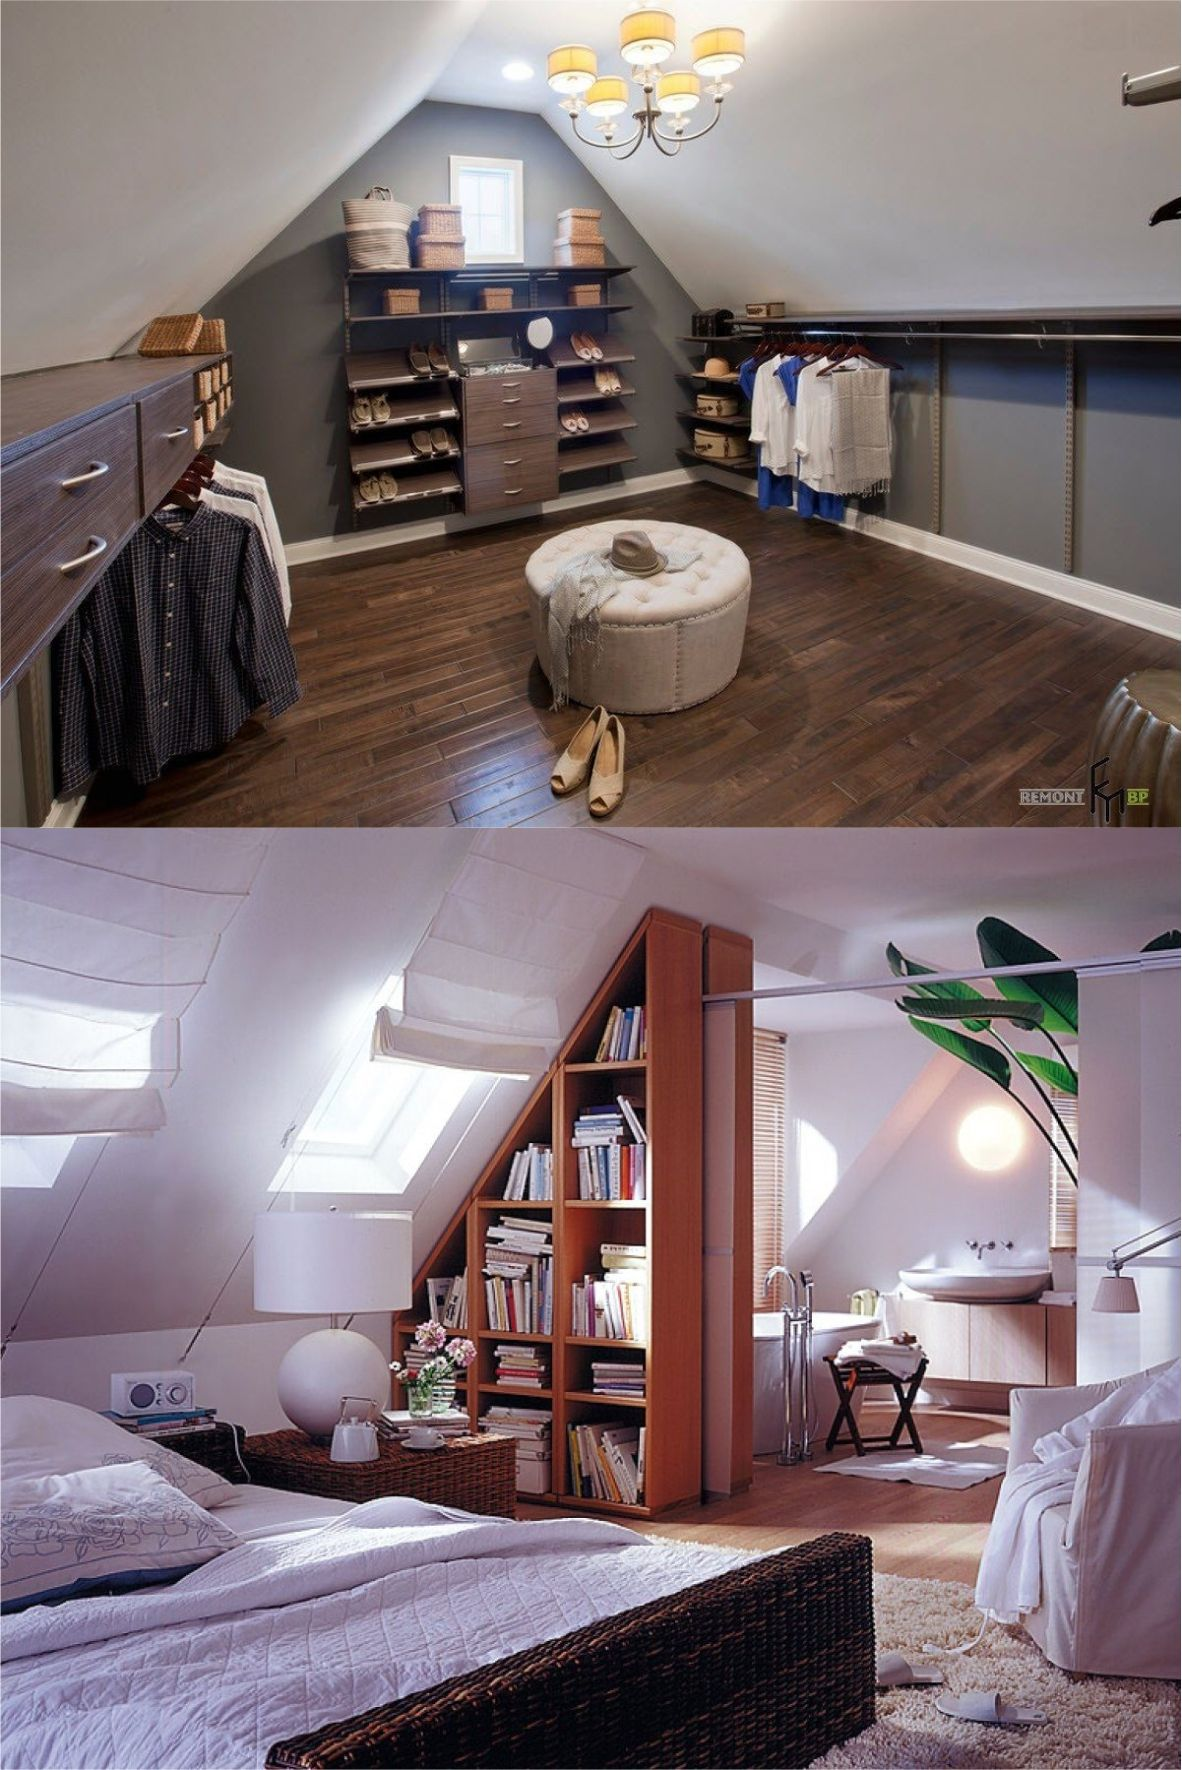 Attic Storage Containers Is Feasible In A Lot Of Homes For Storing A Couple Of Boxes And Also Empty Attic Storage Attic Storage Organization Storage Containers